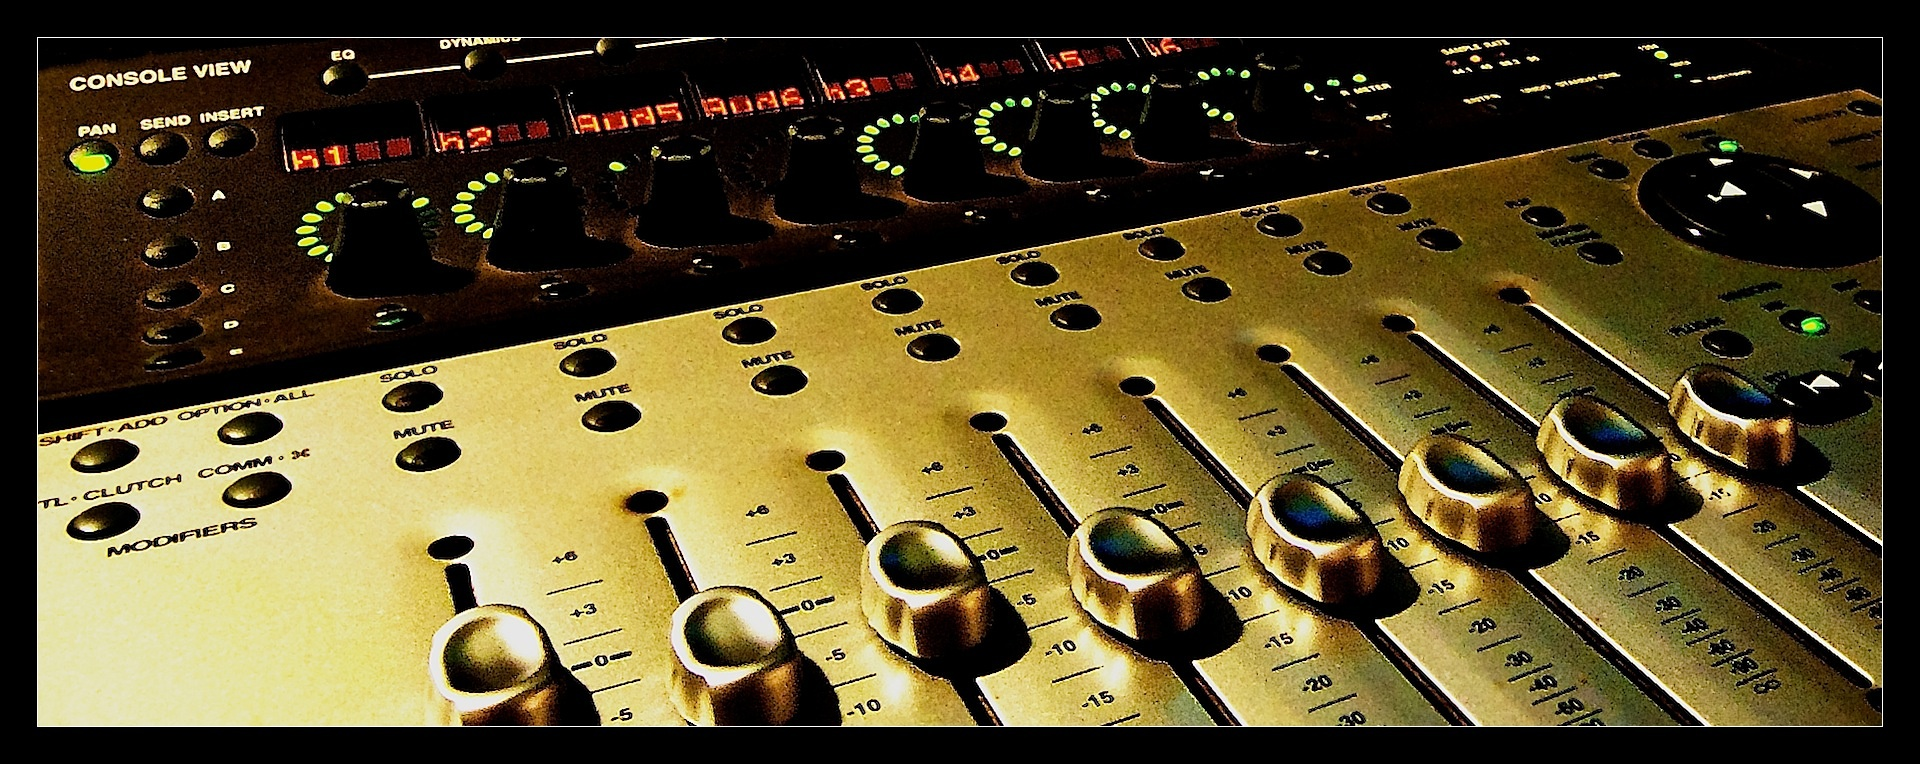 We are currently running Pro Tools in our recording studio. Located in Spokane, WA.